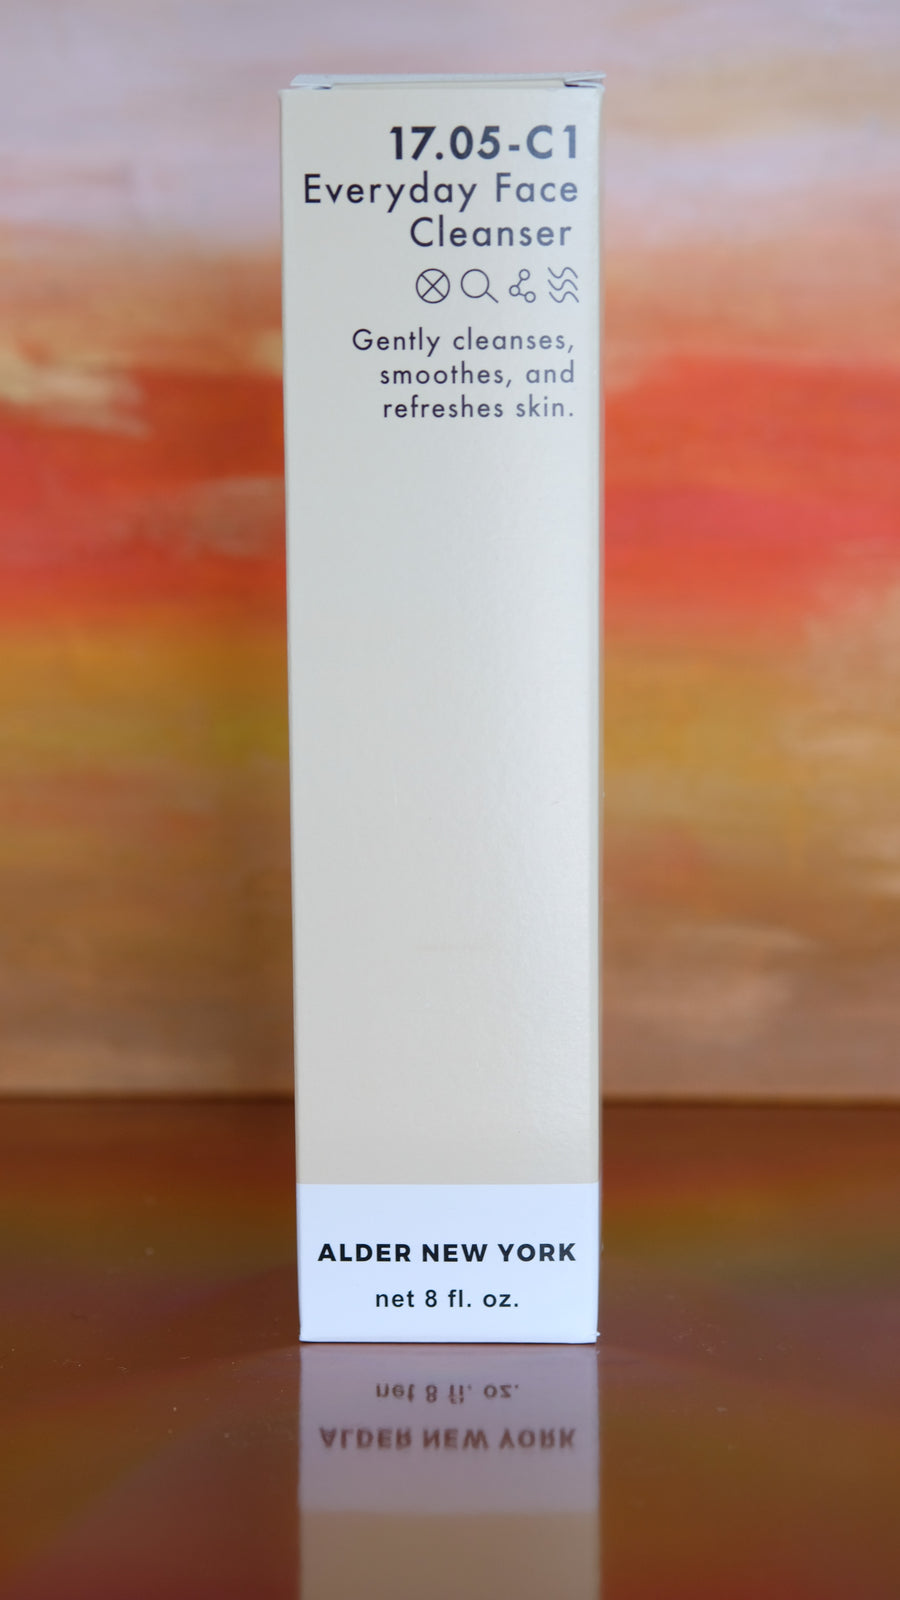 Everyday Face Cleanser by Alder New York